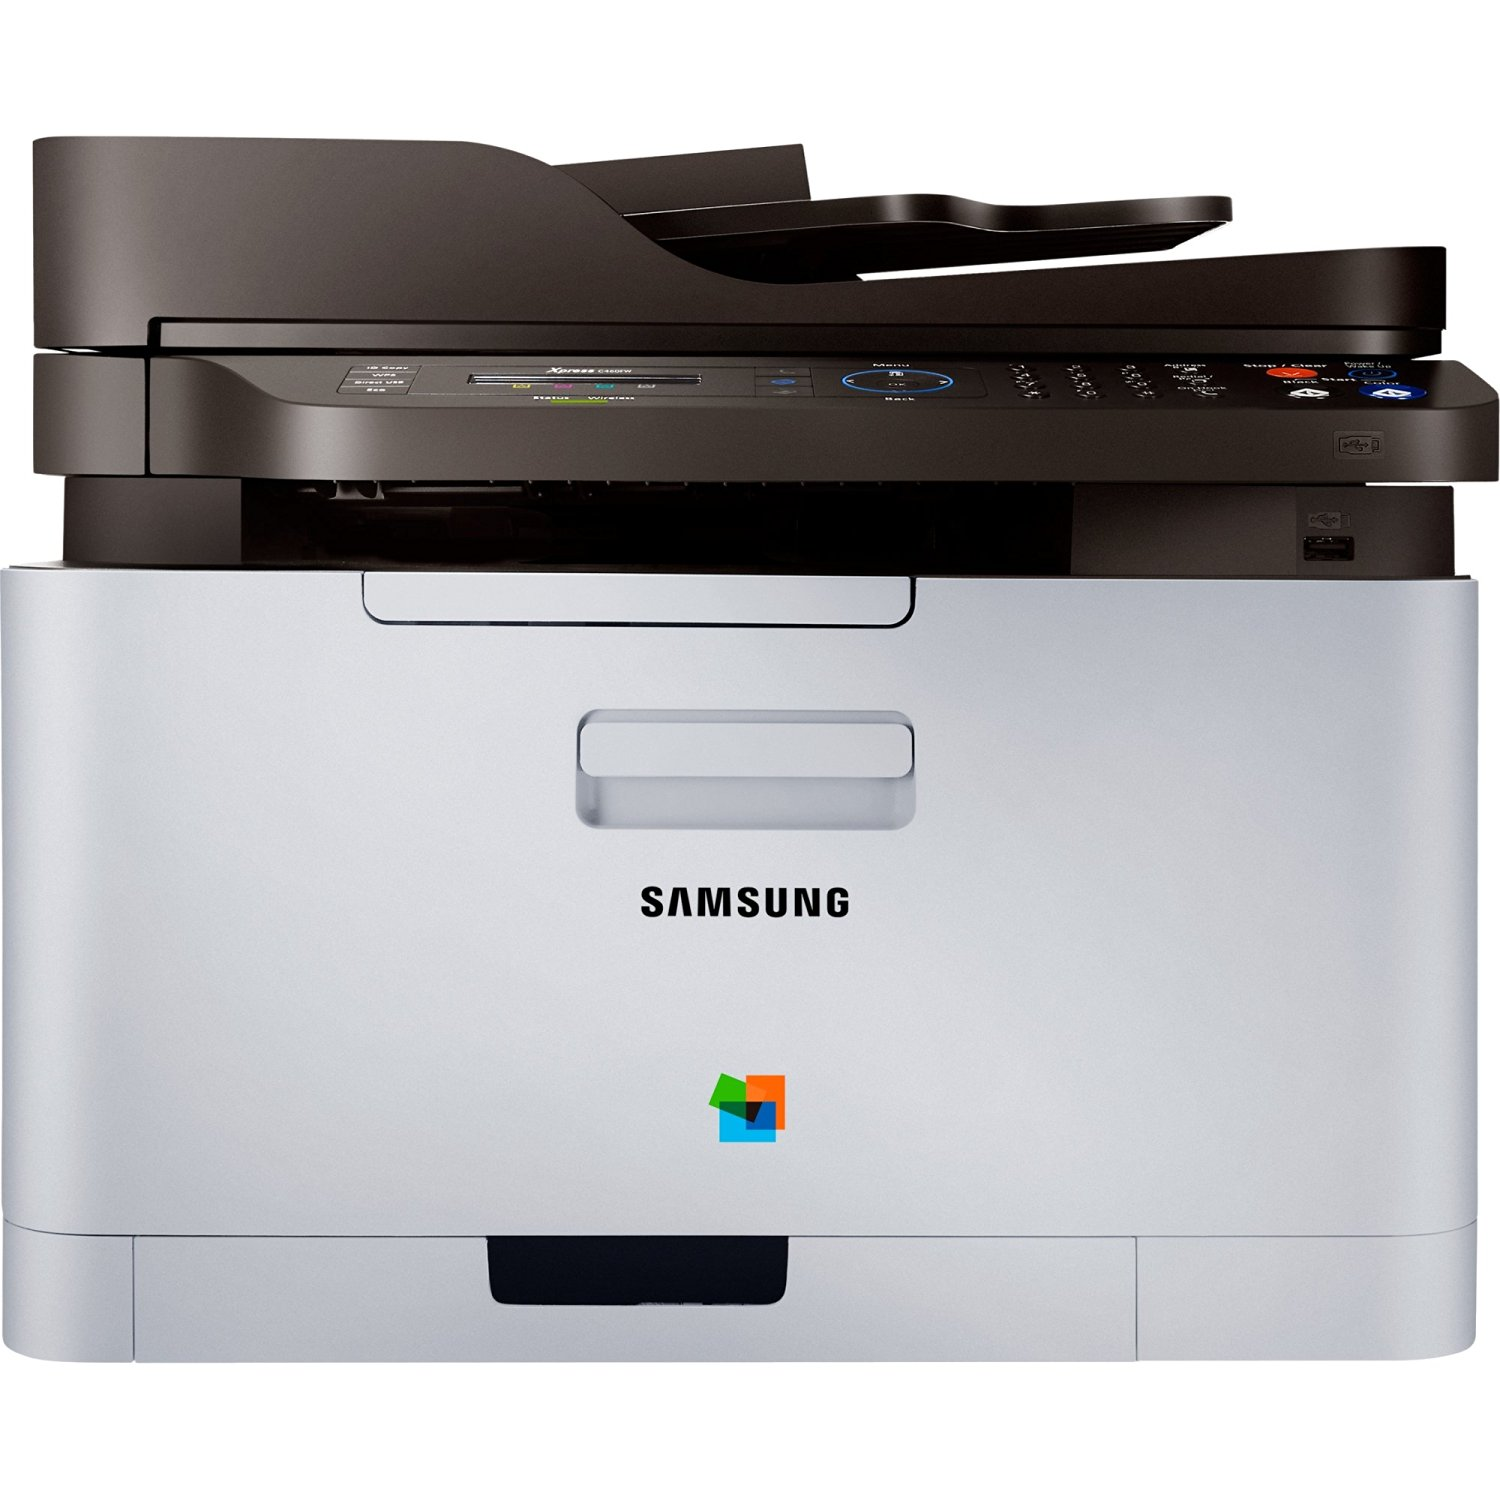 SAMSUNG Xpress SL-C460FW Laser Multifunction Printer - Color - Plain Paper Print - Desktop / SL-C460FW/XAA /